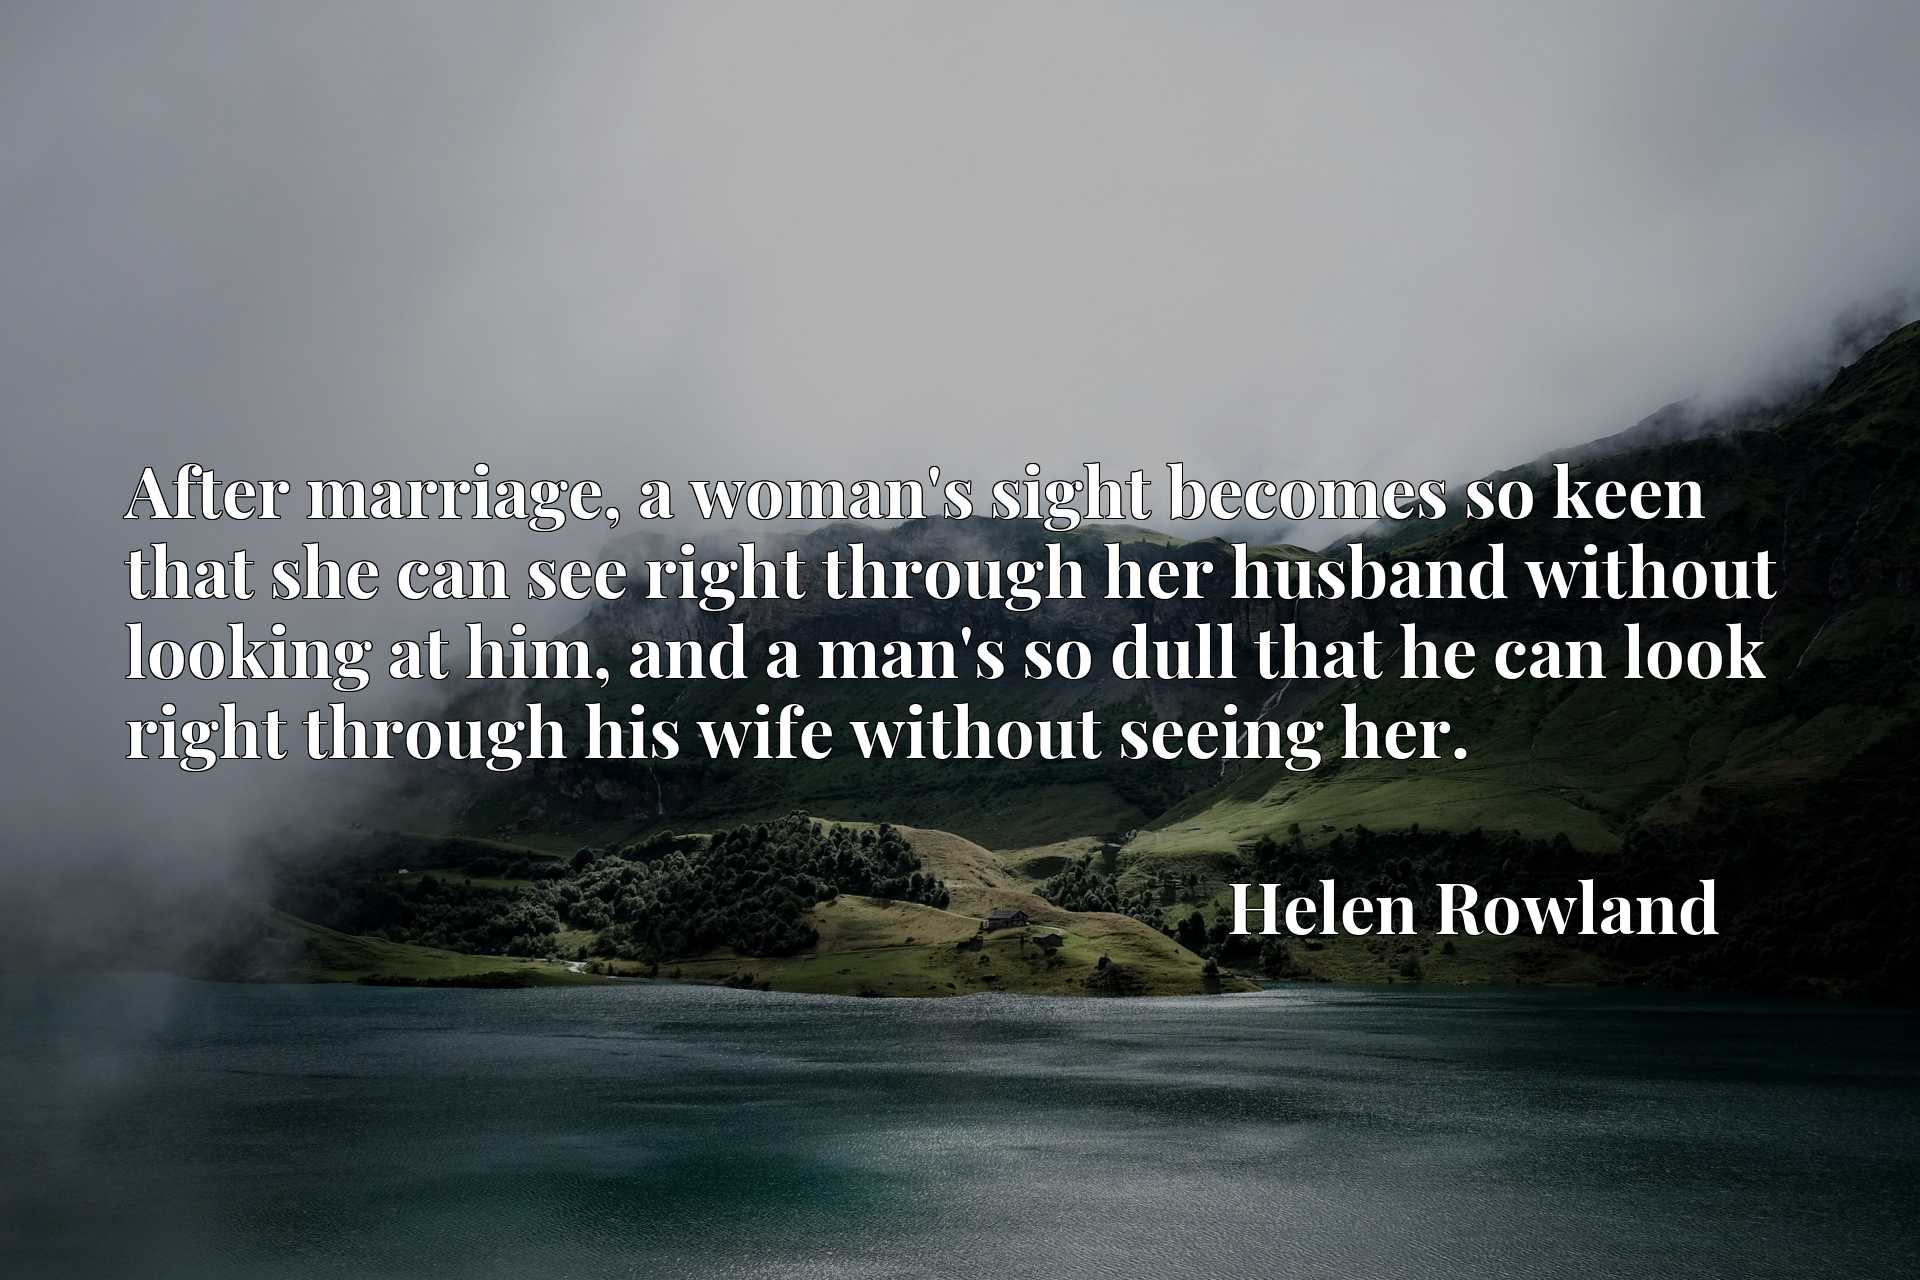 Quote Picture :After marriage, a woman's sight becomes so keen that she can see right through her husband without looking at him, and a man's so dull that he can look right through his wife without seeing her.